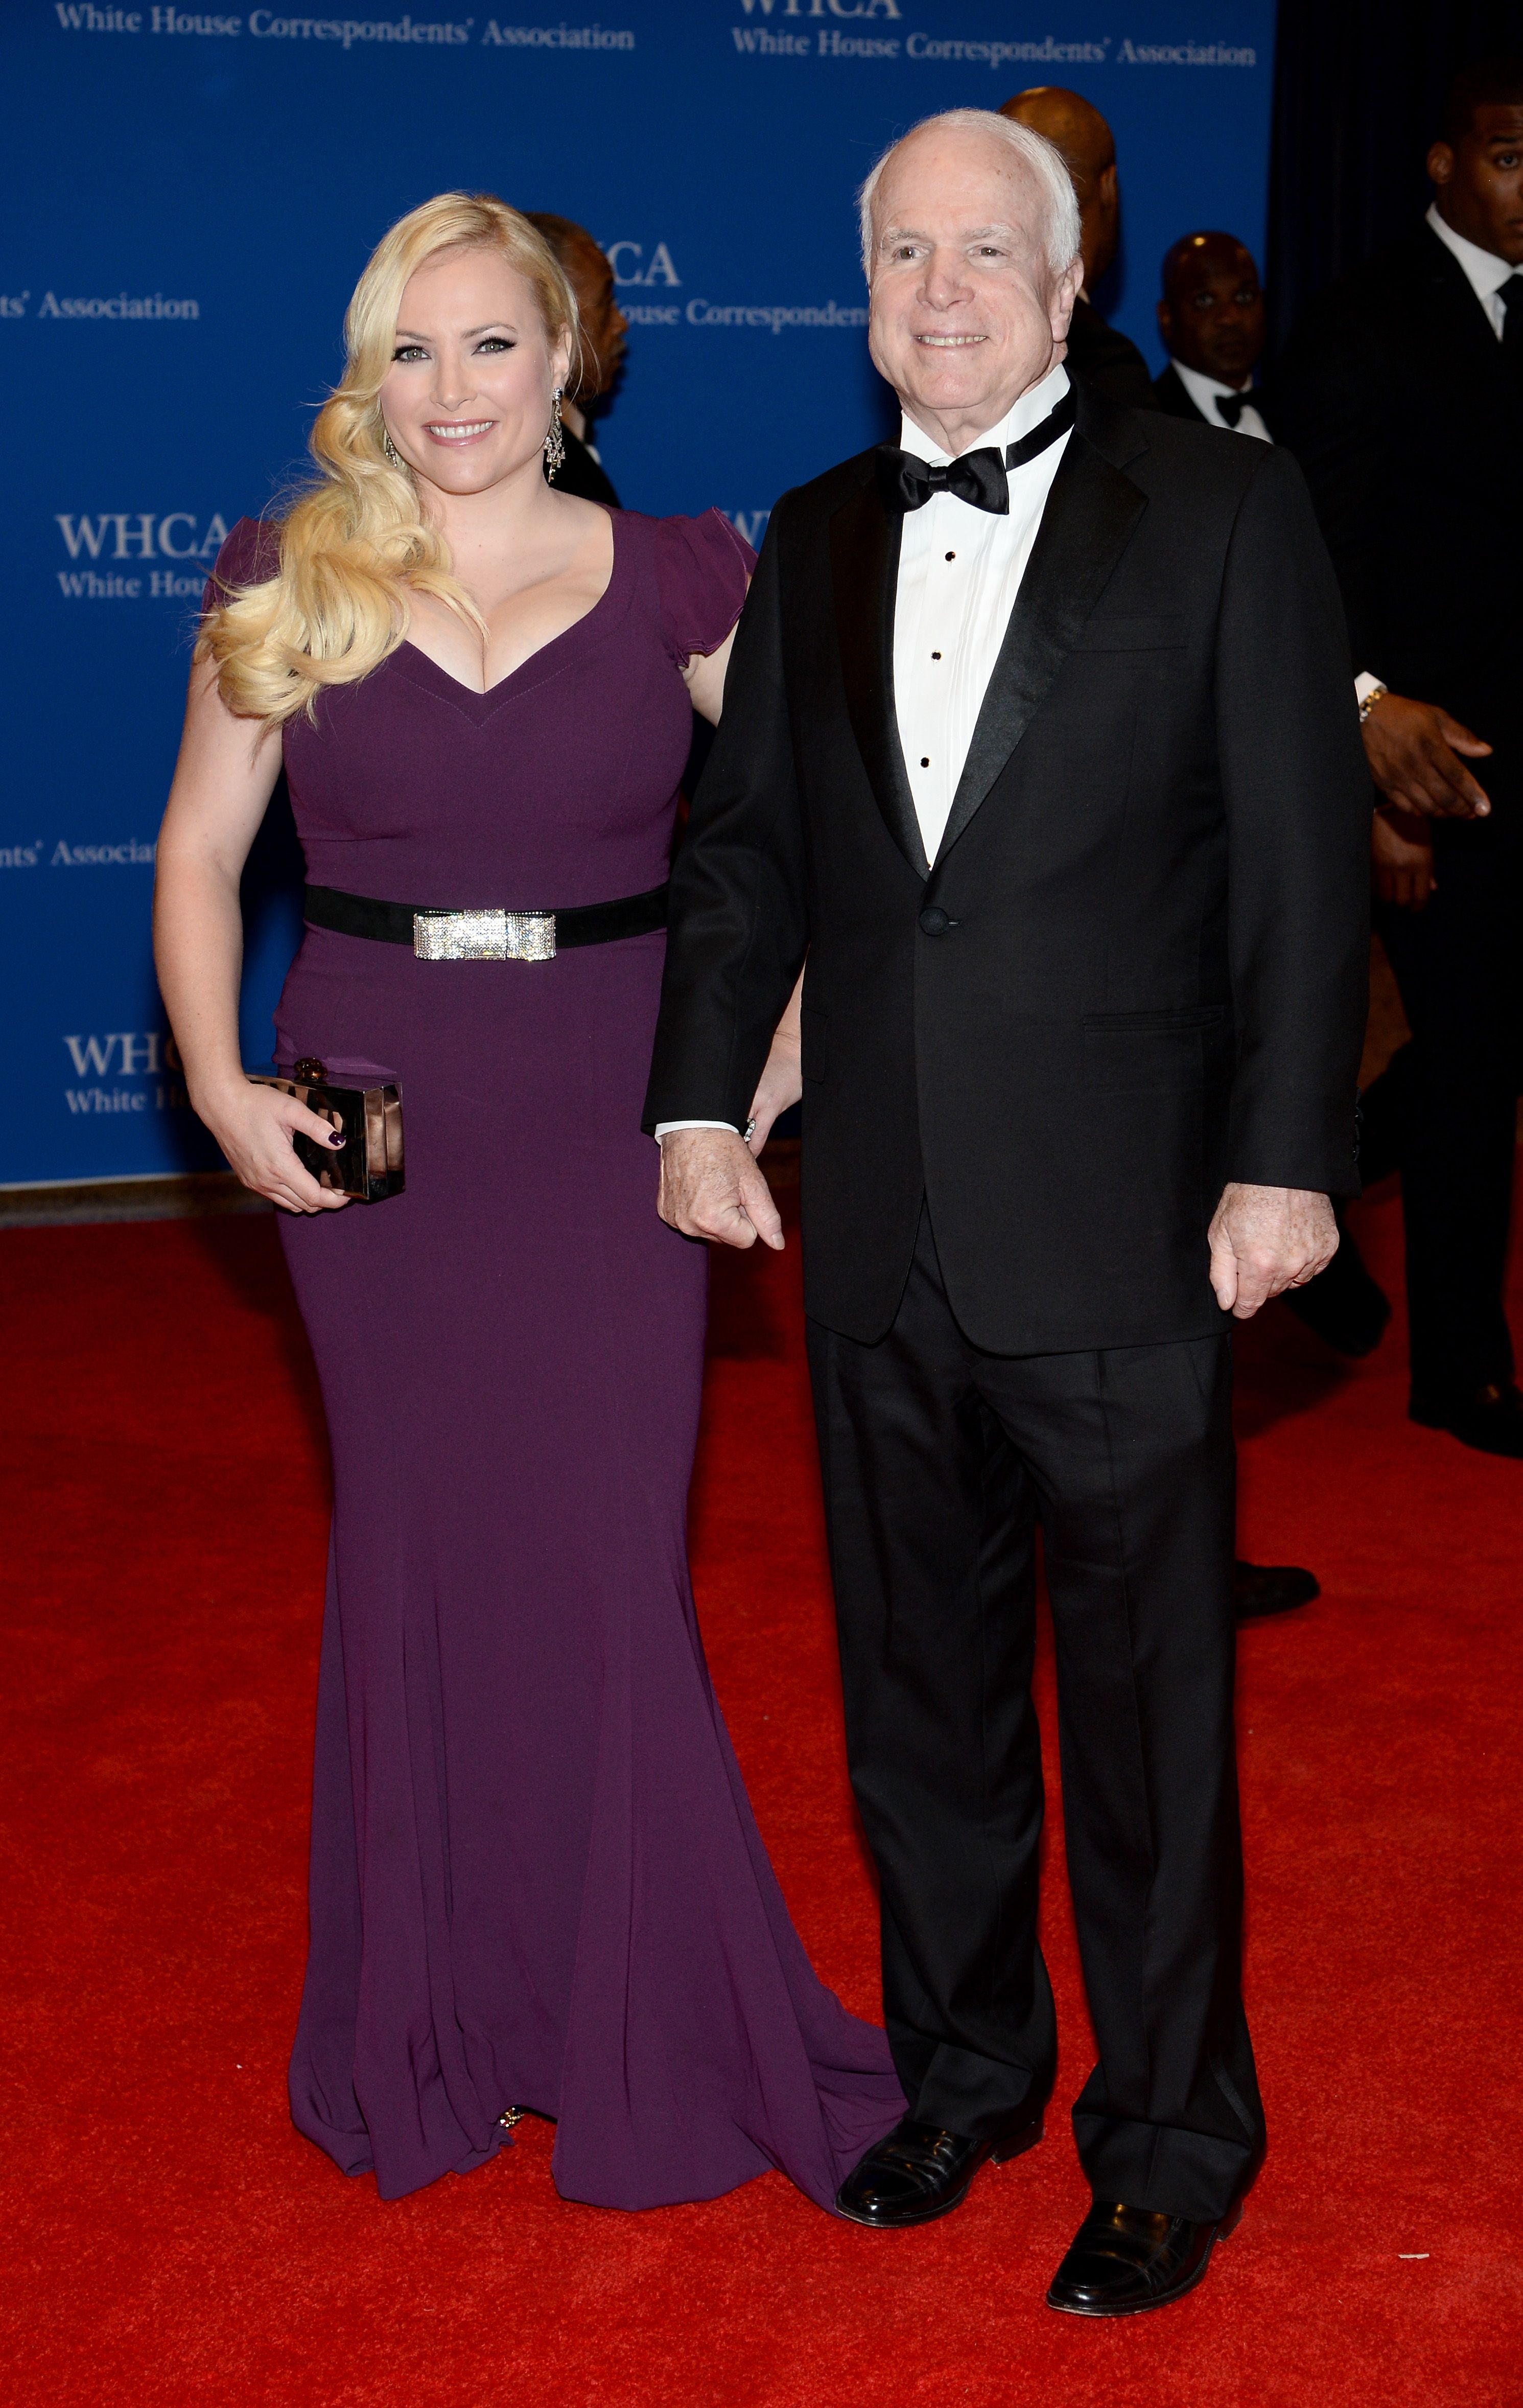 Megan McCain and late Senator John McCain at the 100th Annual White House Correspondents' Association Dinner at the Washington Hilton on May 3, 2014 | Photo: Getty Images